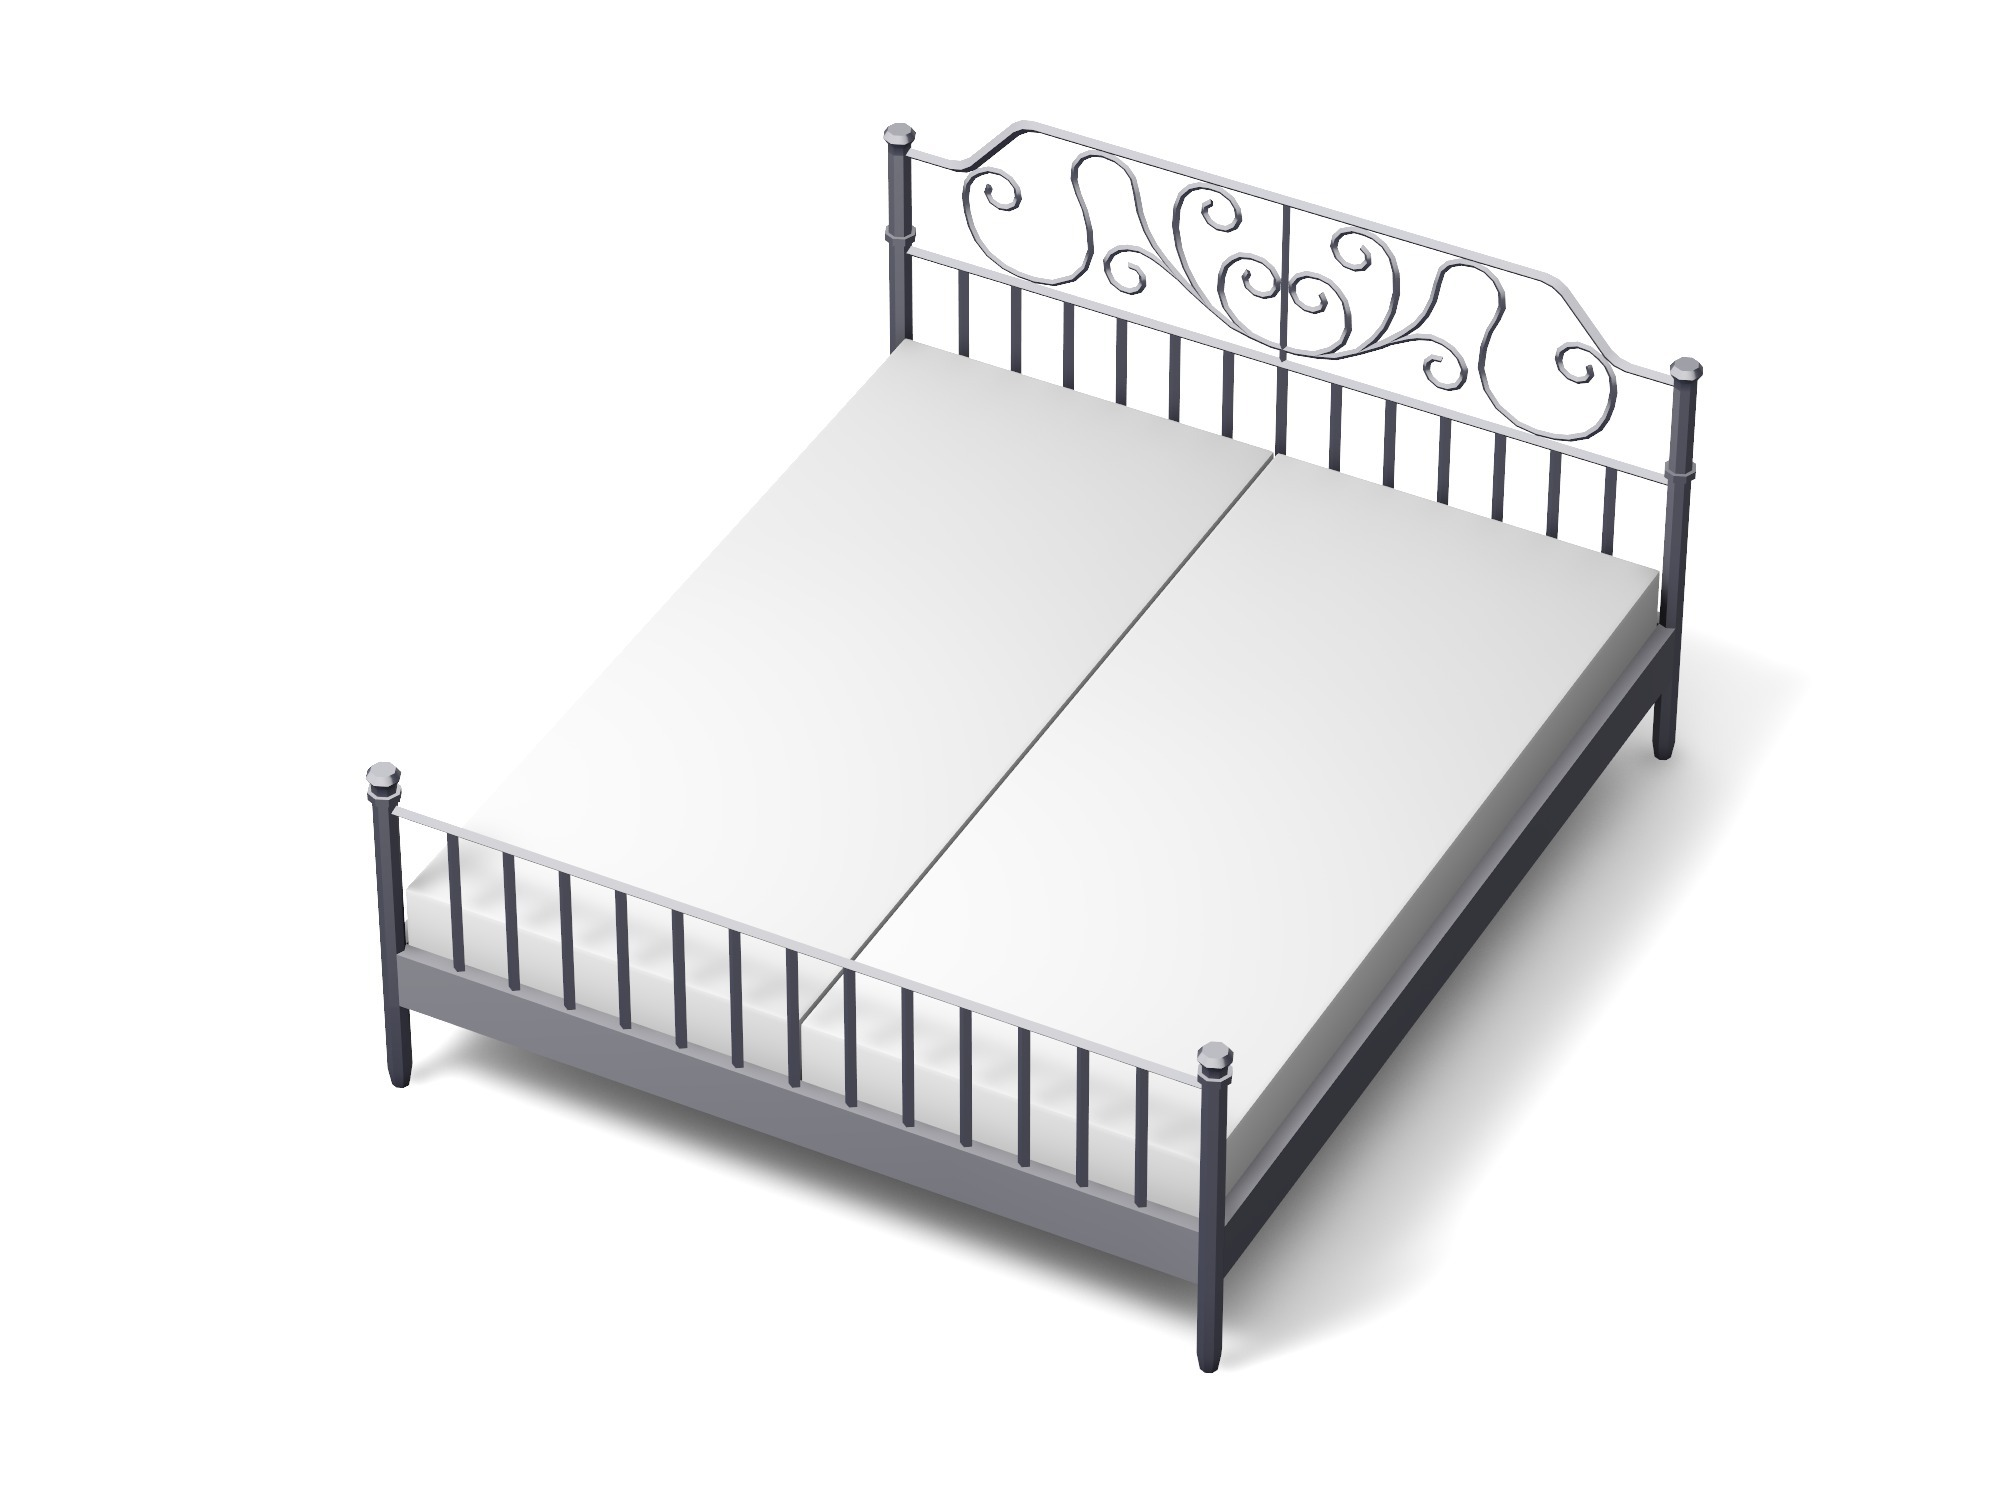 Double bed with steel frame - 3D design by Vectary assets Sep 10, 2018